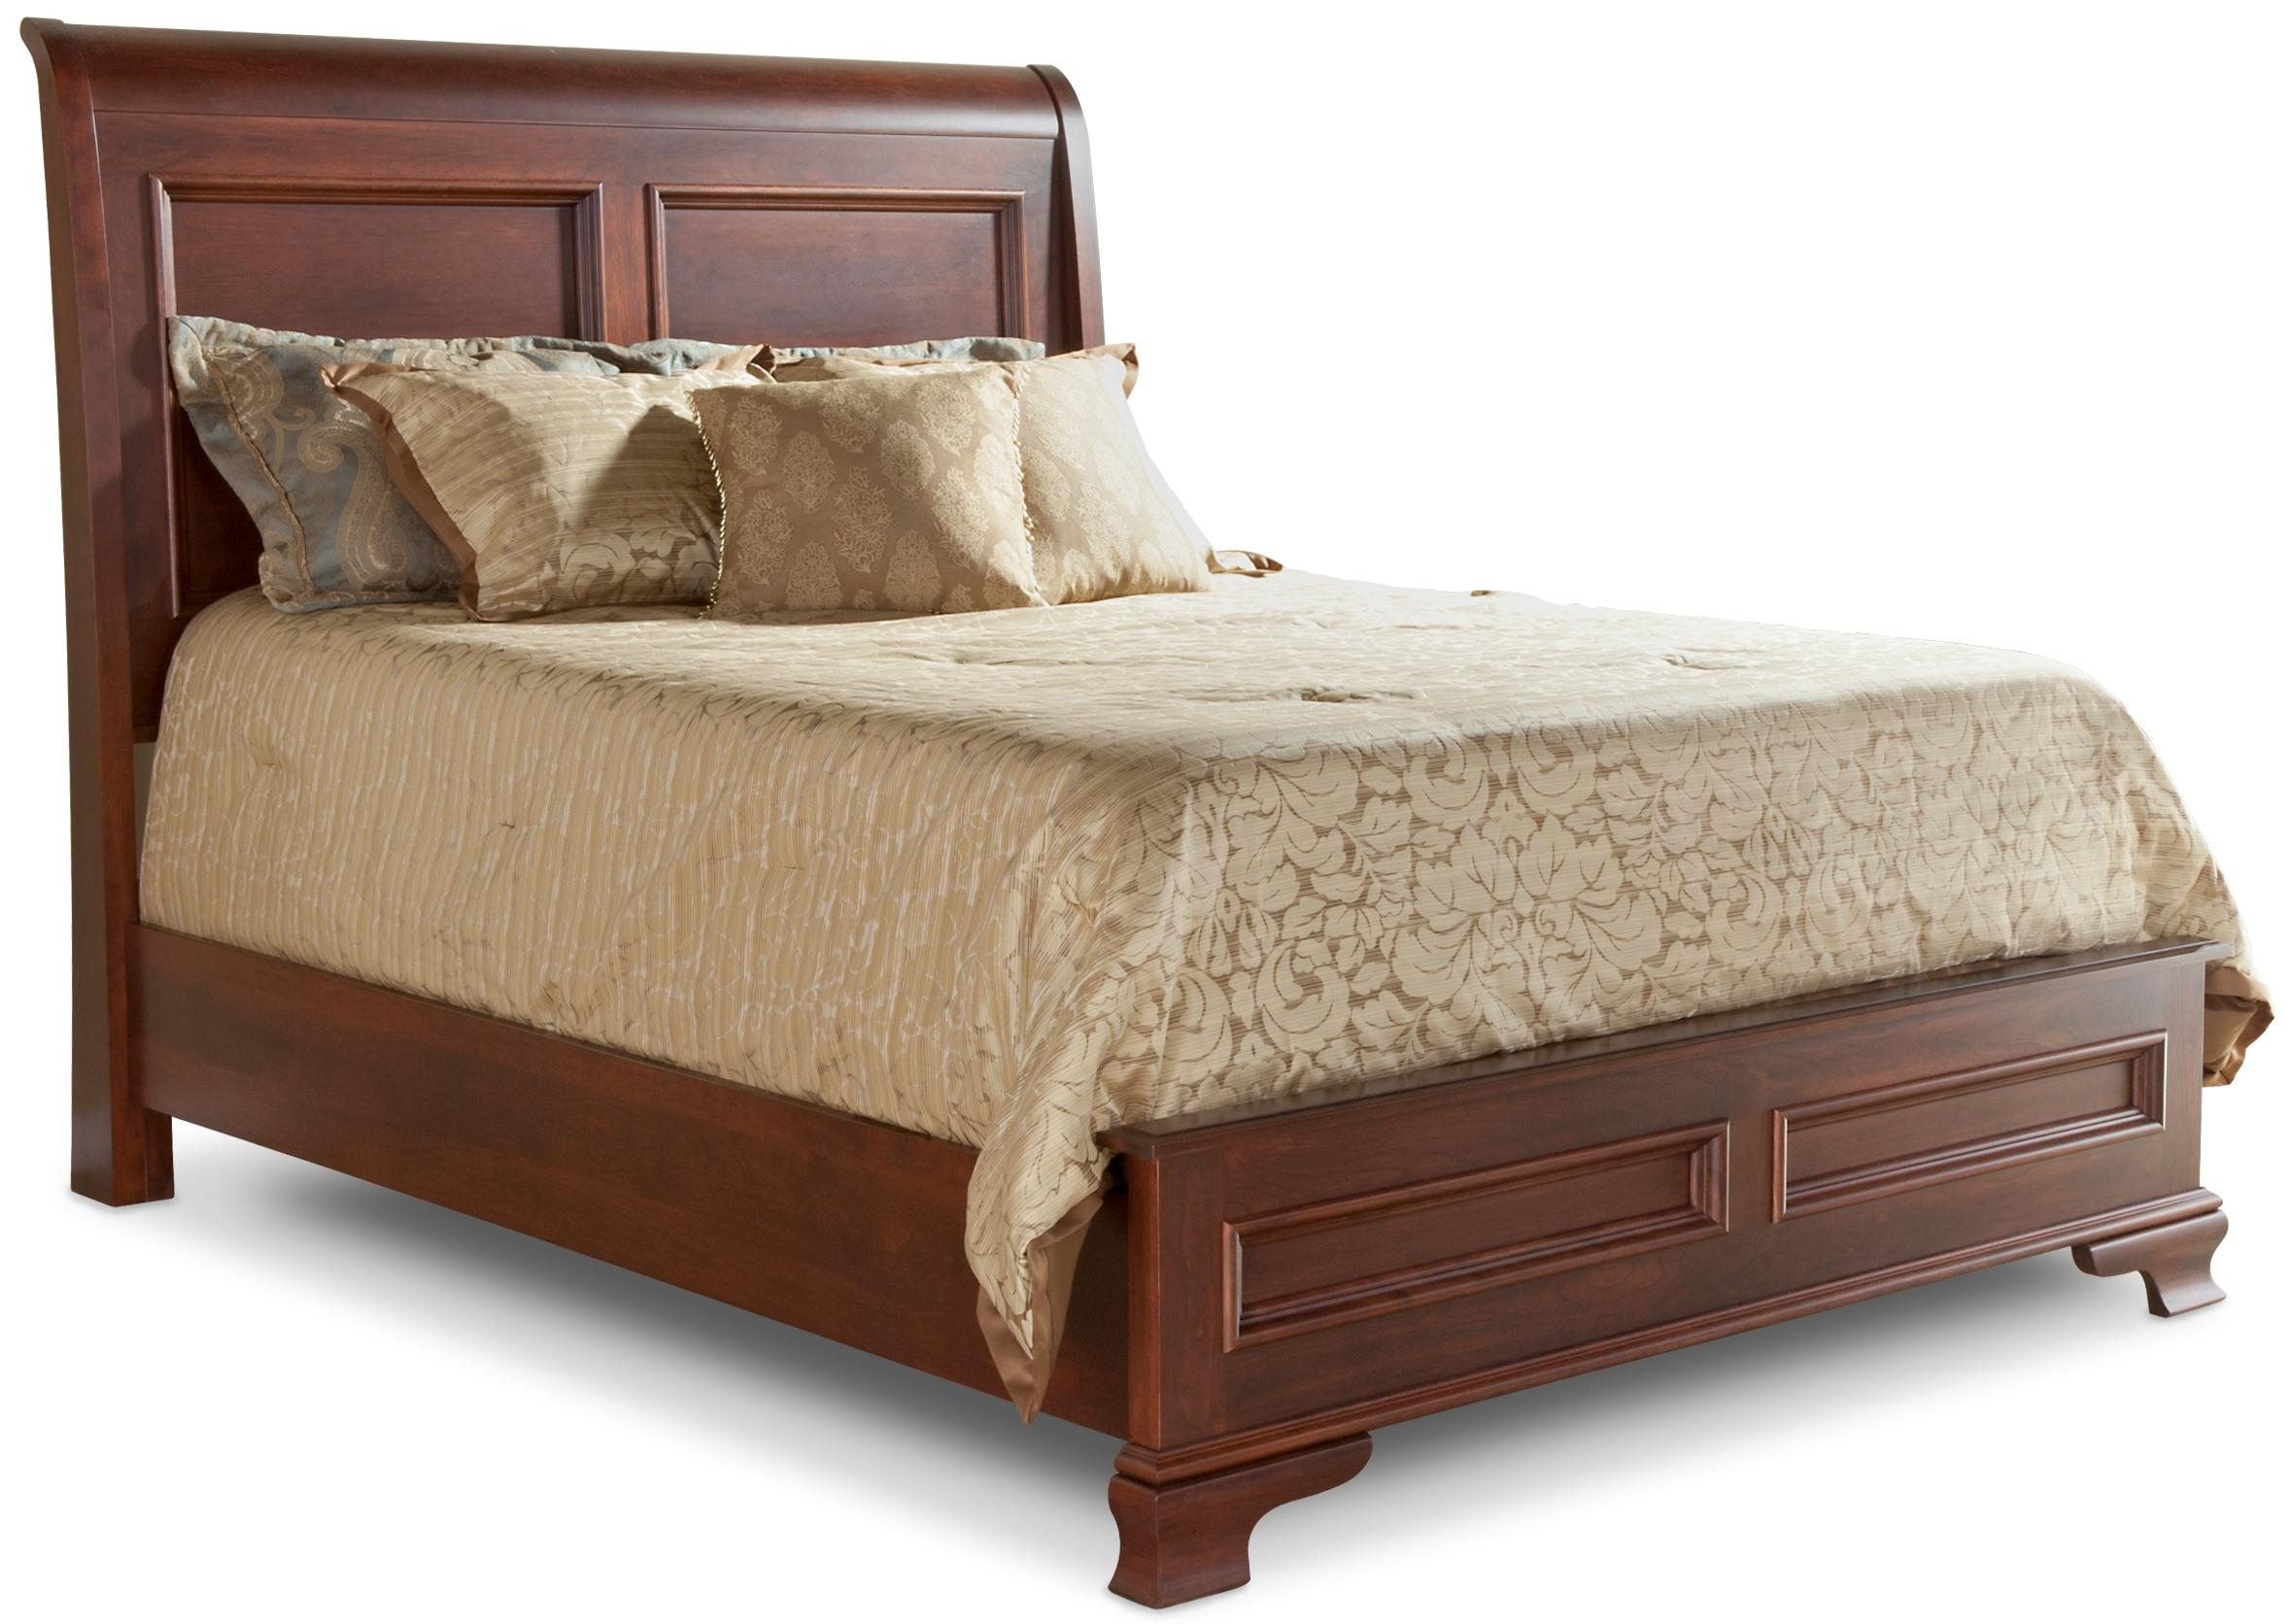 Classic Sleigh Bed with Low Footboard by Daniel's Amish at Pilgrim Furniture City